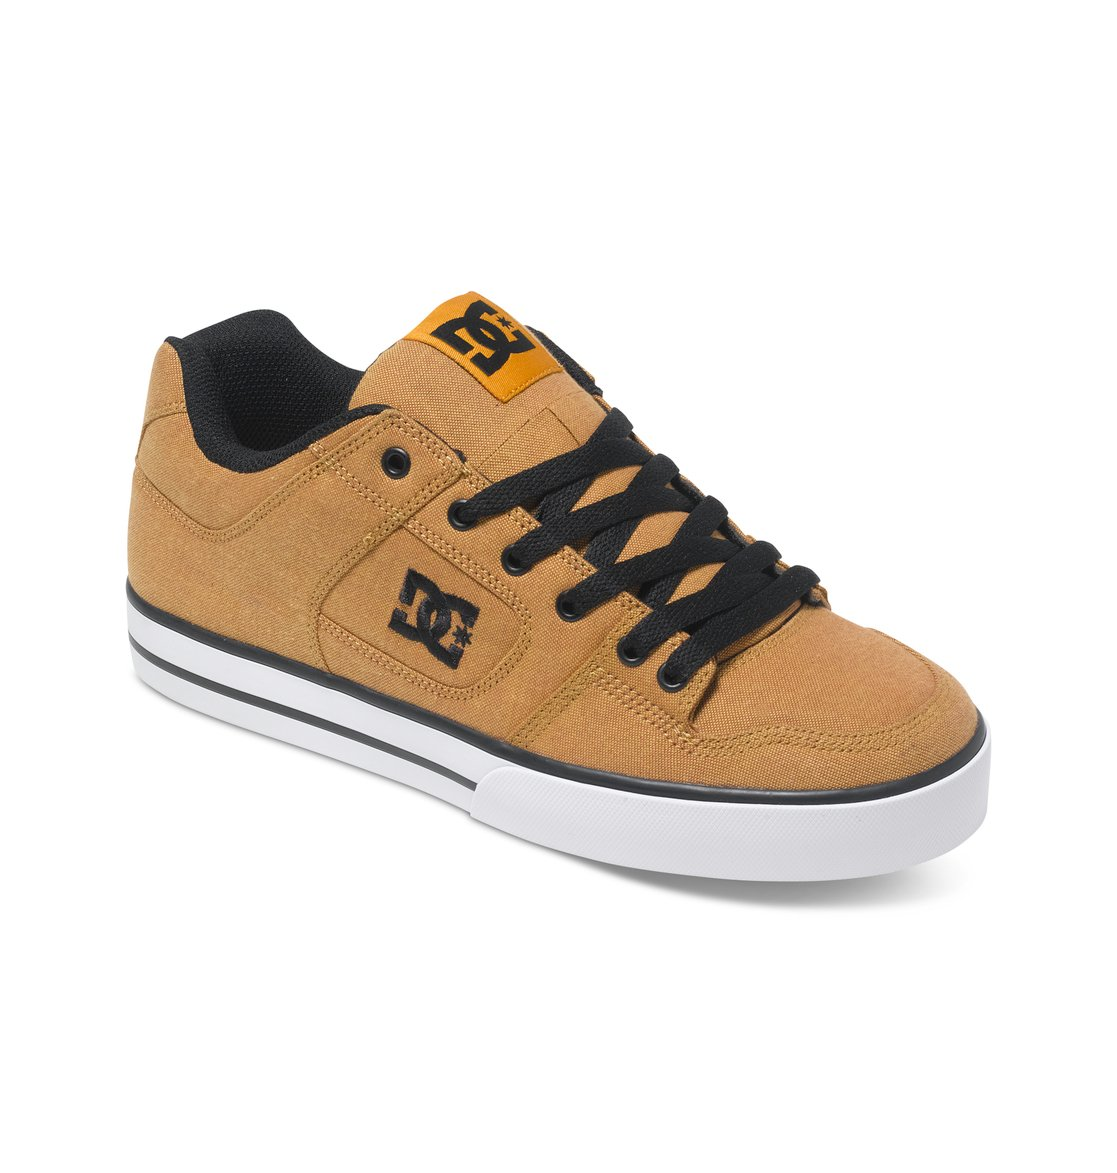 DC Shoes & Skate Sneakers. DC skate shoes combine advanced technical research and pro skater-led design with cutting edge style and comfort. DC shoes redefine skate footwear, making most other shoes .